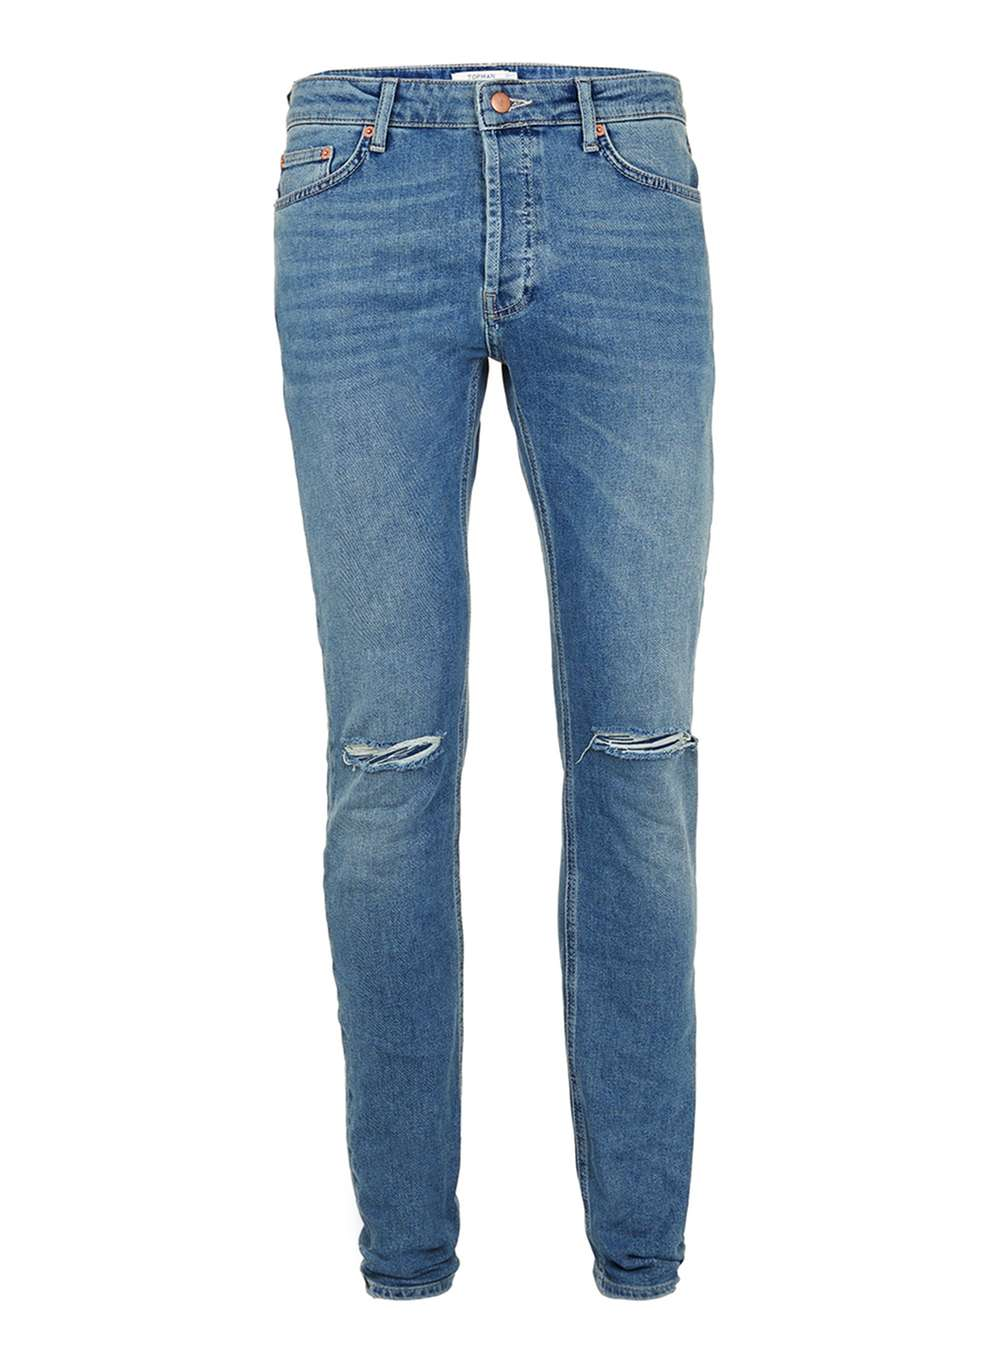 Light wash Rip Jeans